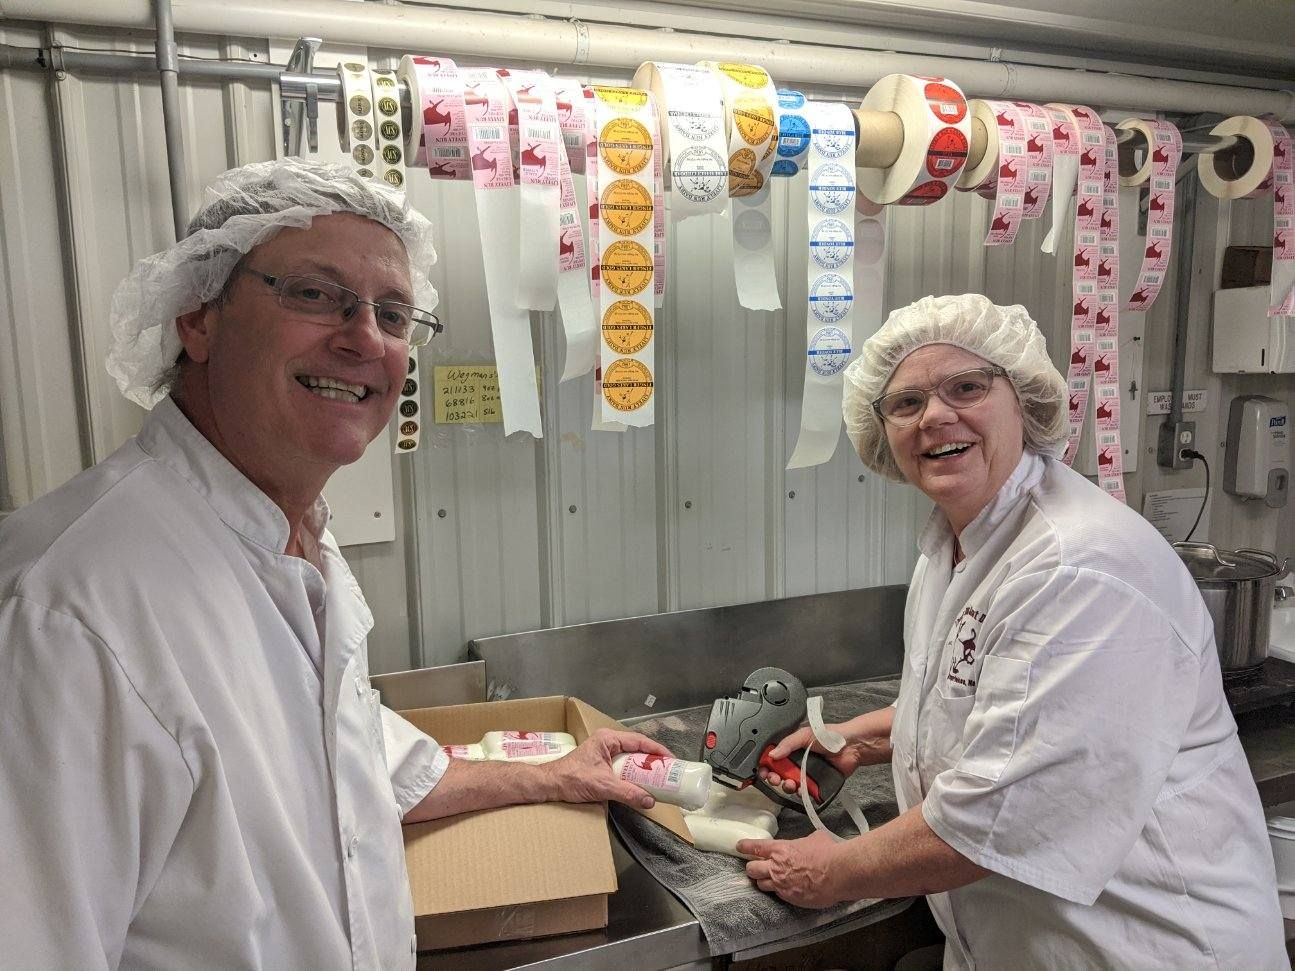 Steve and Susanne Messmer packaging cheese donations